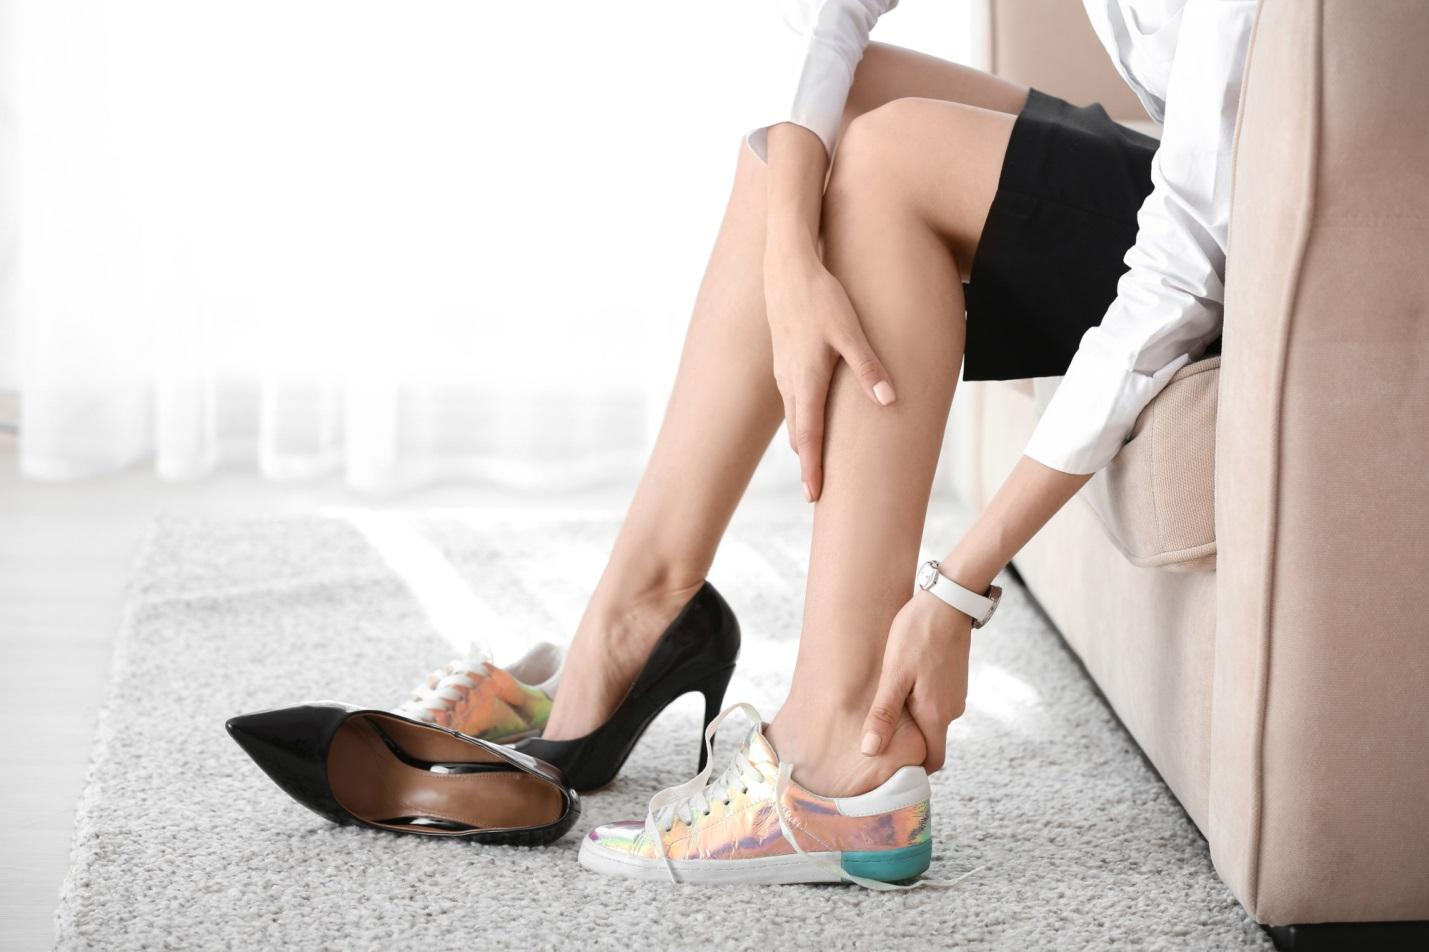 C:\Users\Kathir\Pictures\4 Comfortable Work Shoes Options for the Fashionista.jpg